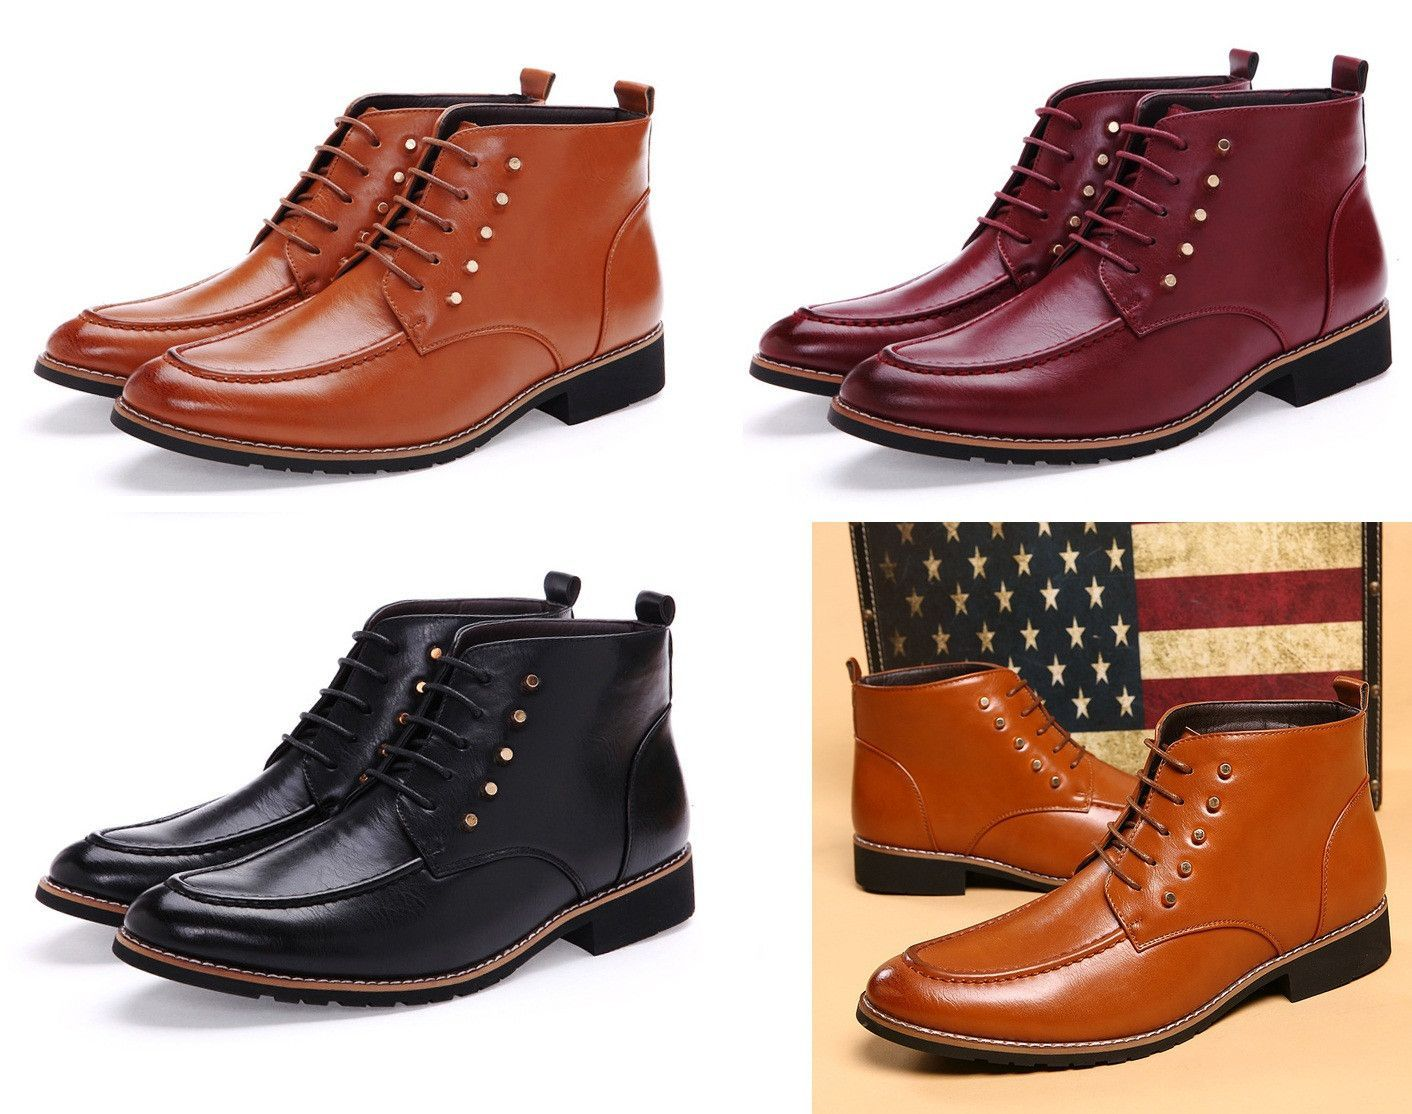 Mens stylish midtop casual dress boots products